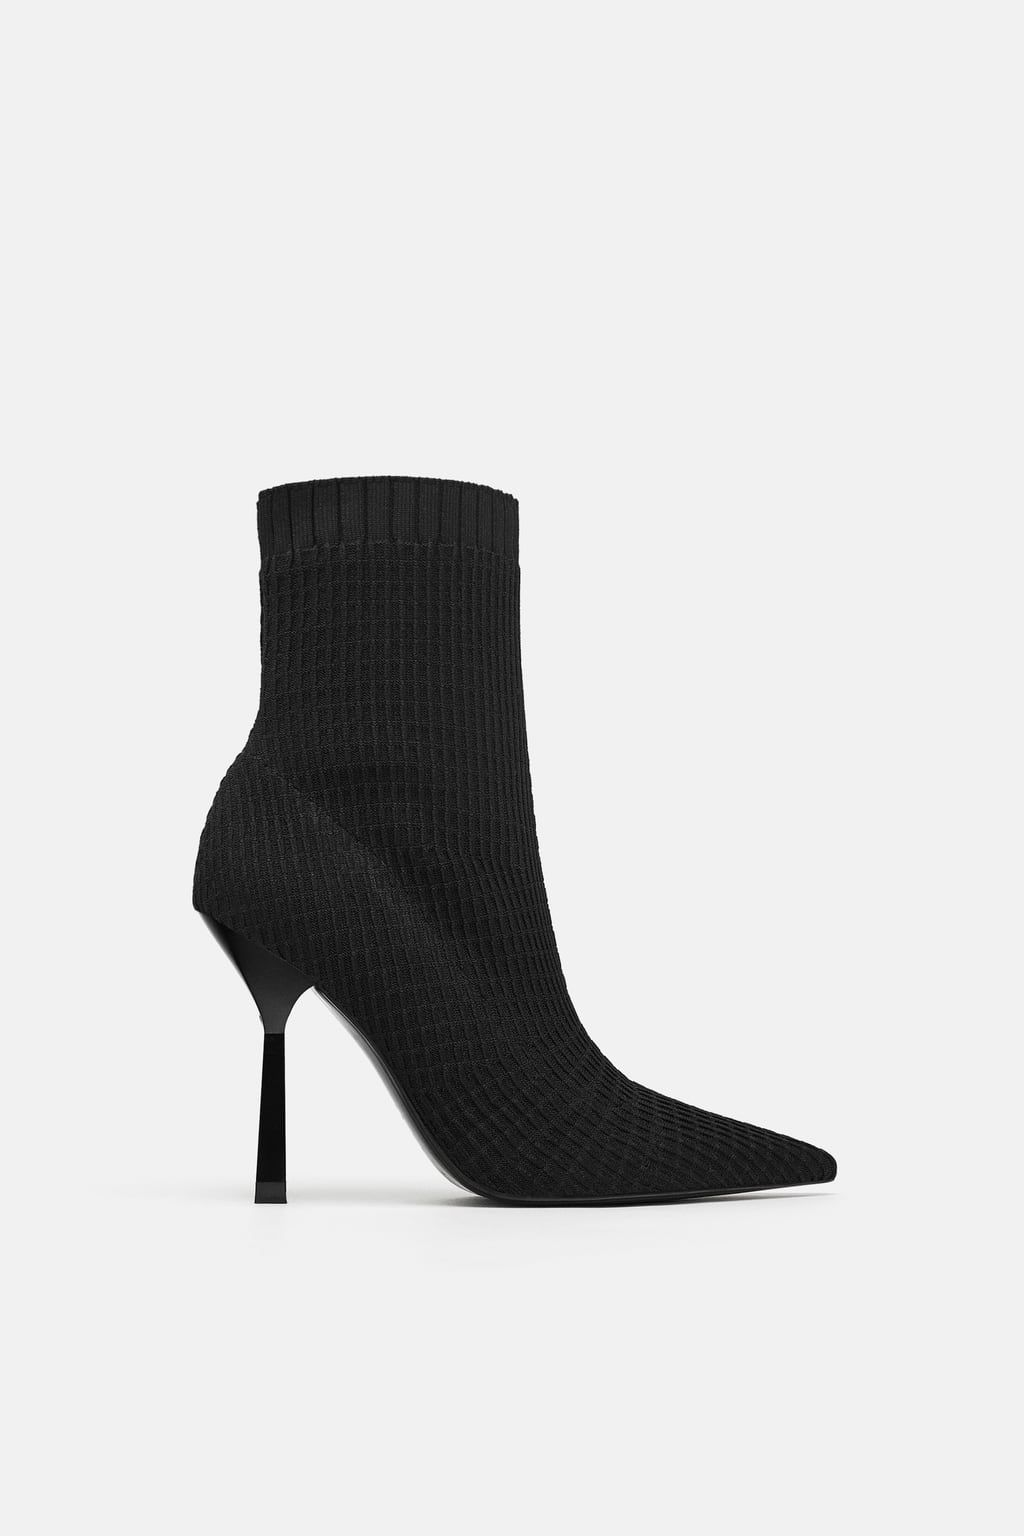 ca4a9363fa4 Image 2 of ELASTIC HEELED BOOTIES from Zara